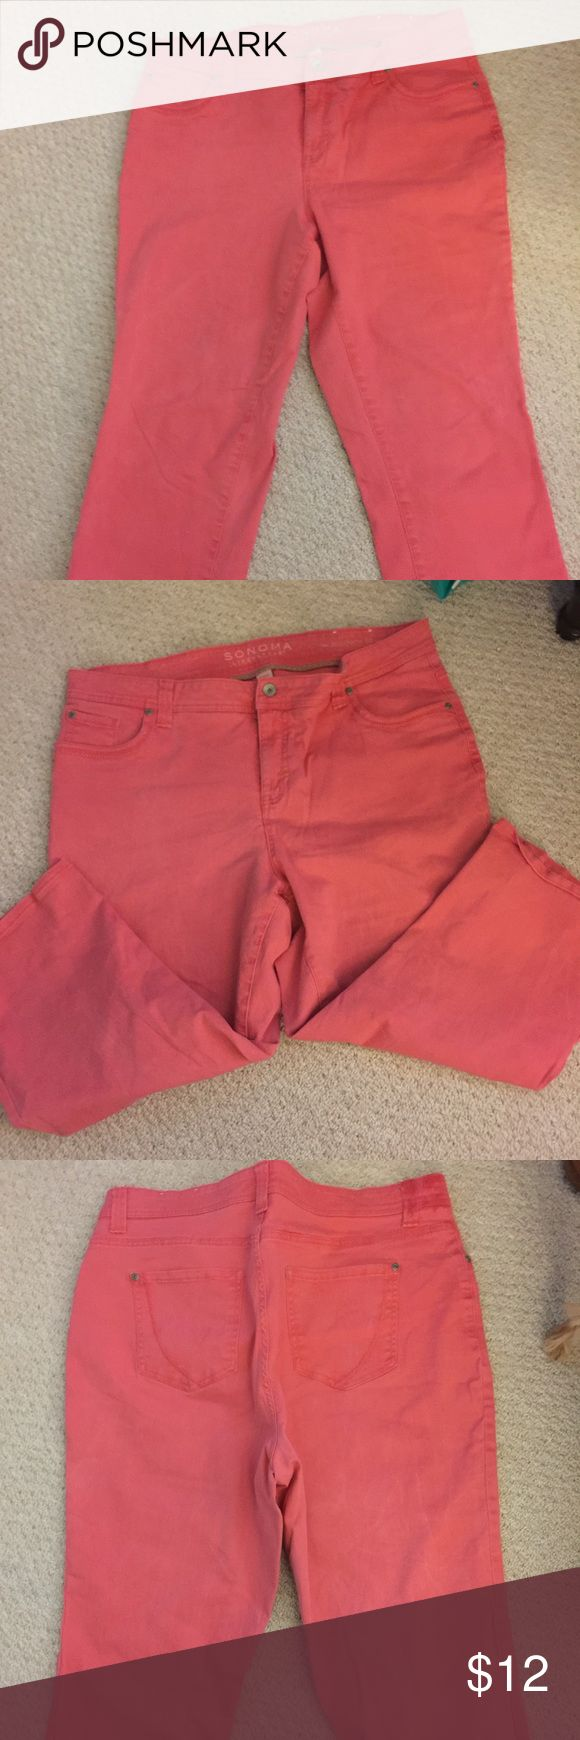 Women's crop jeans size 16 W. Never worn Never worn women's coral colored crop jeans in size 16W. Excellent condition; bought but never wore Sonoma Jeans Ankle & Cropped